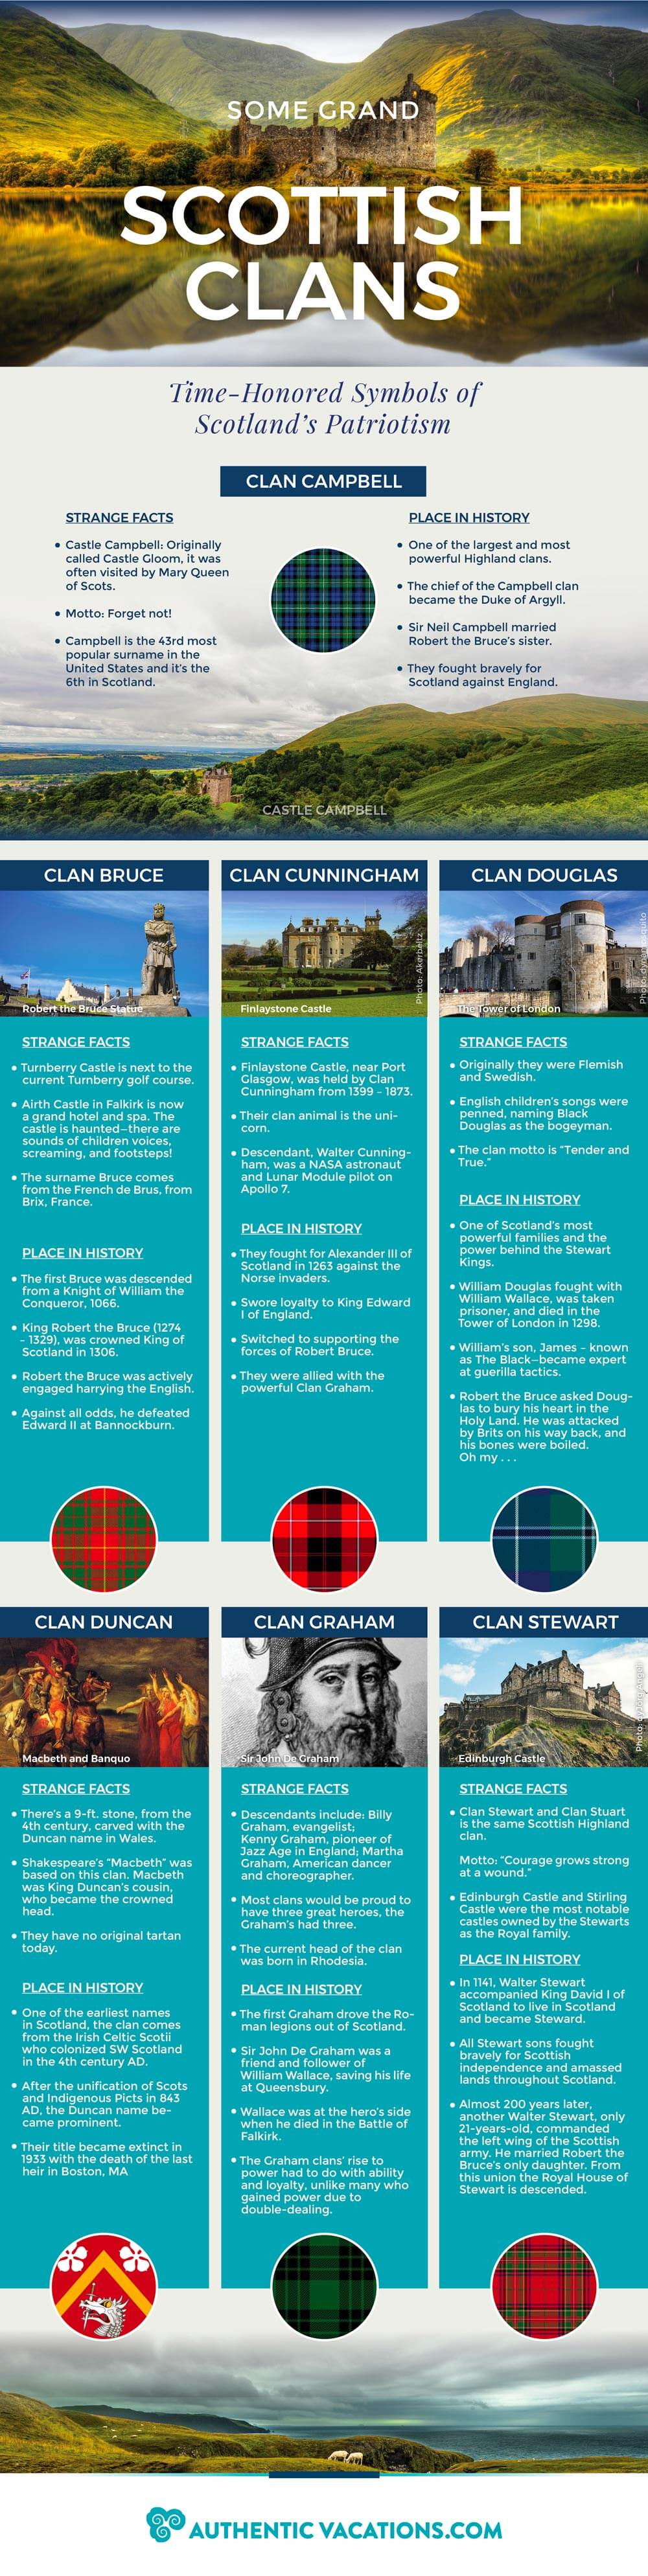 Some Grand Scottish Clans